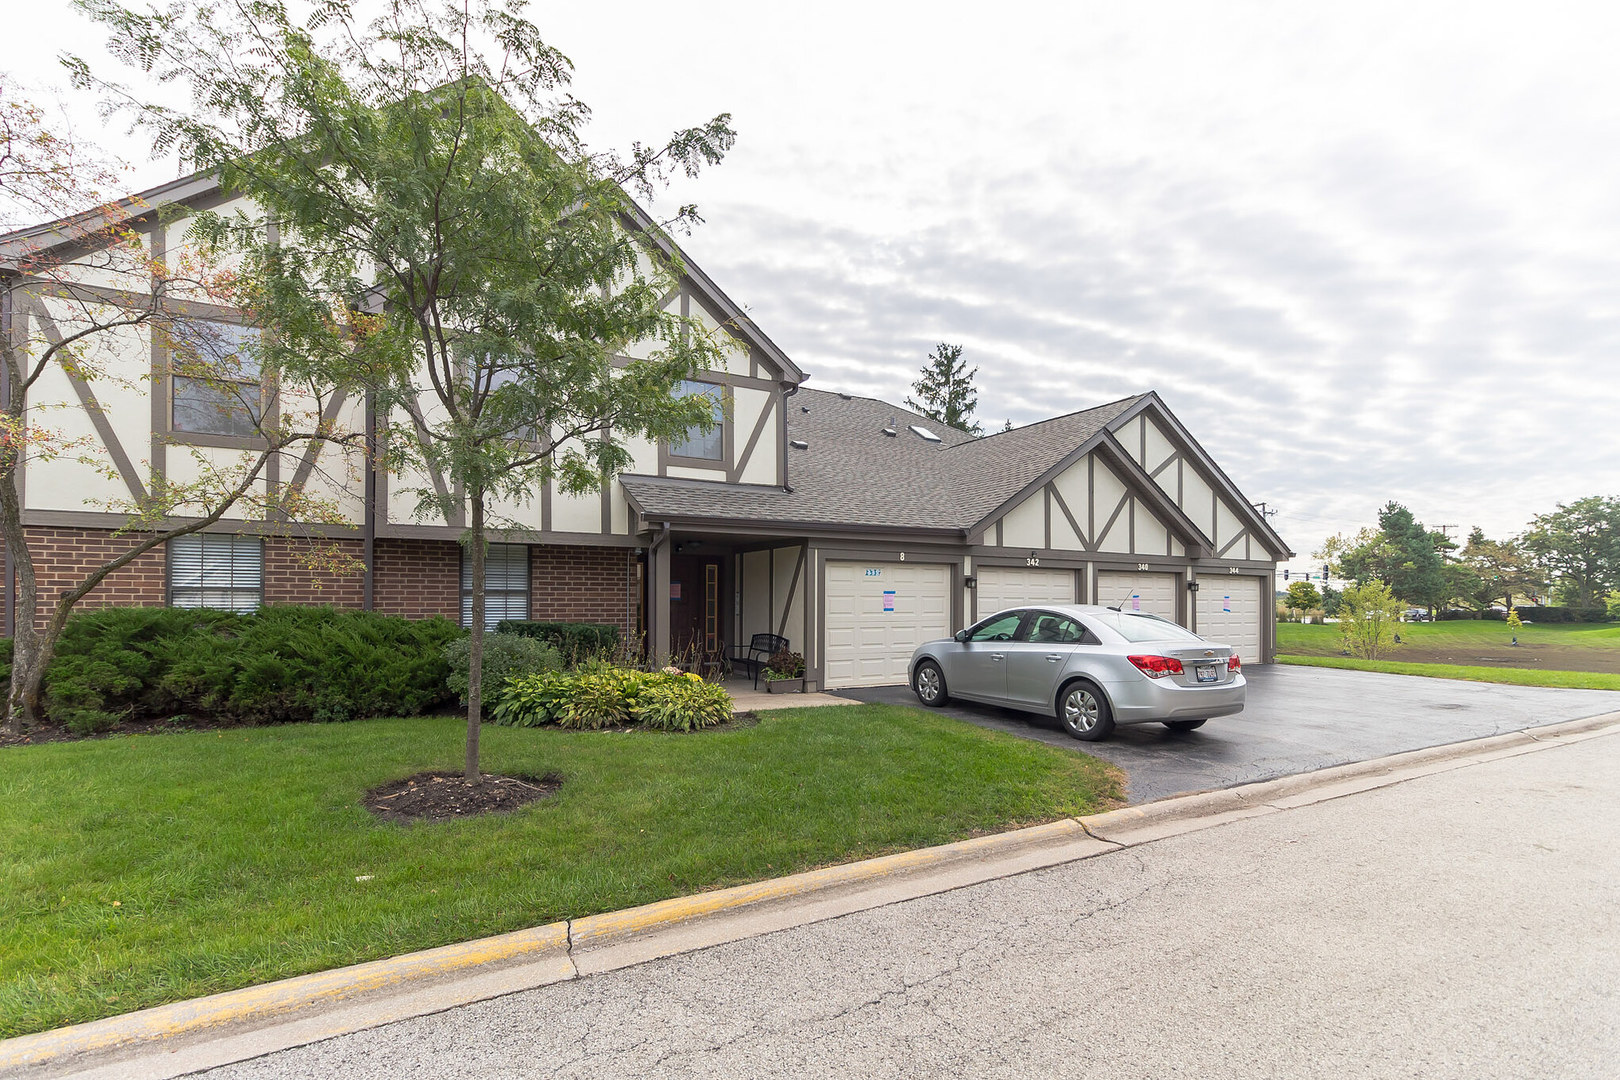 344 Essex 4-A-R, Wood Dale, Illinois, 60191